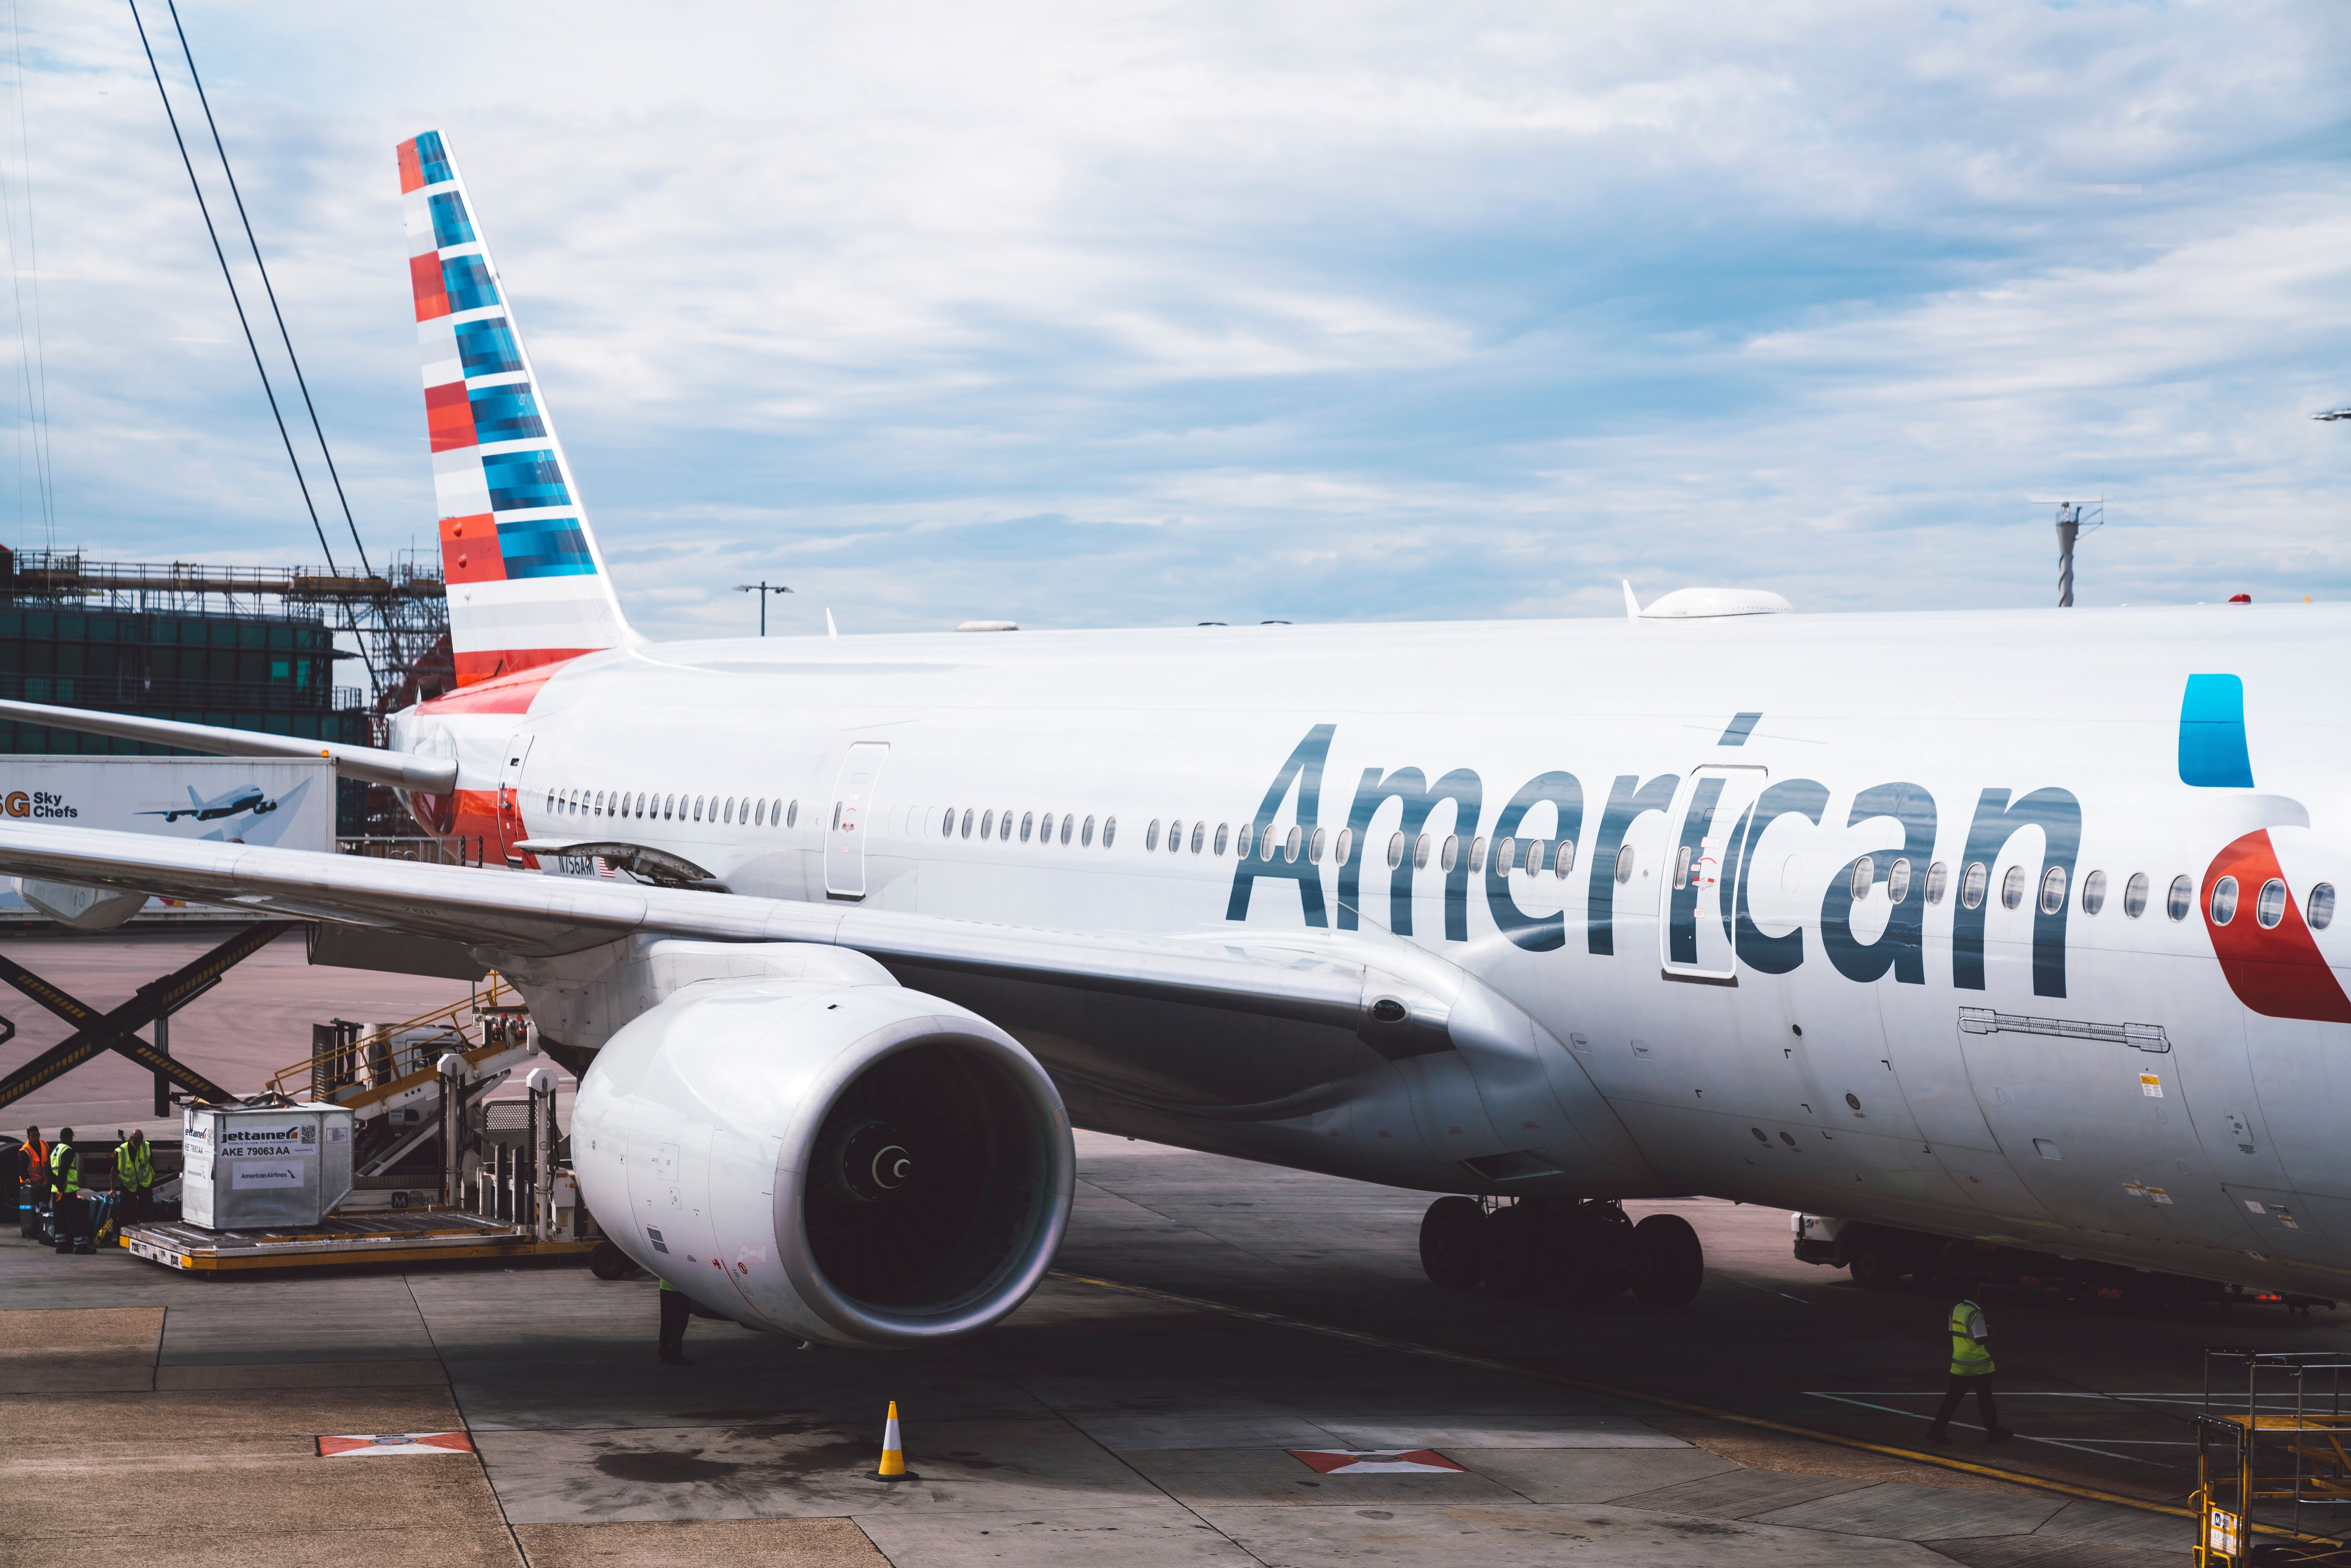 The American Airlines plane, not pictured, was attempting to depart the Miami International Airport in July when pilots notic